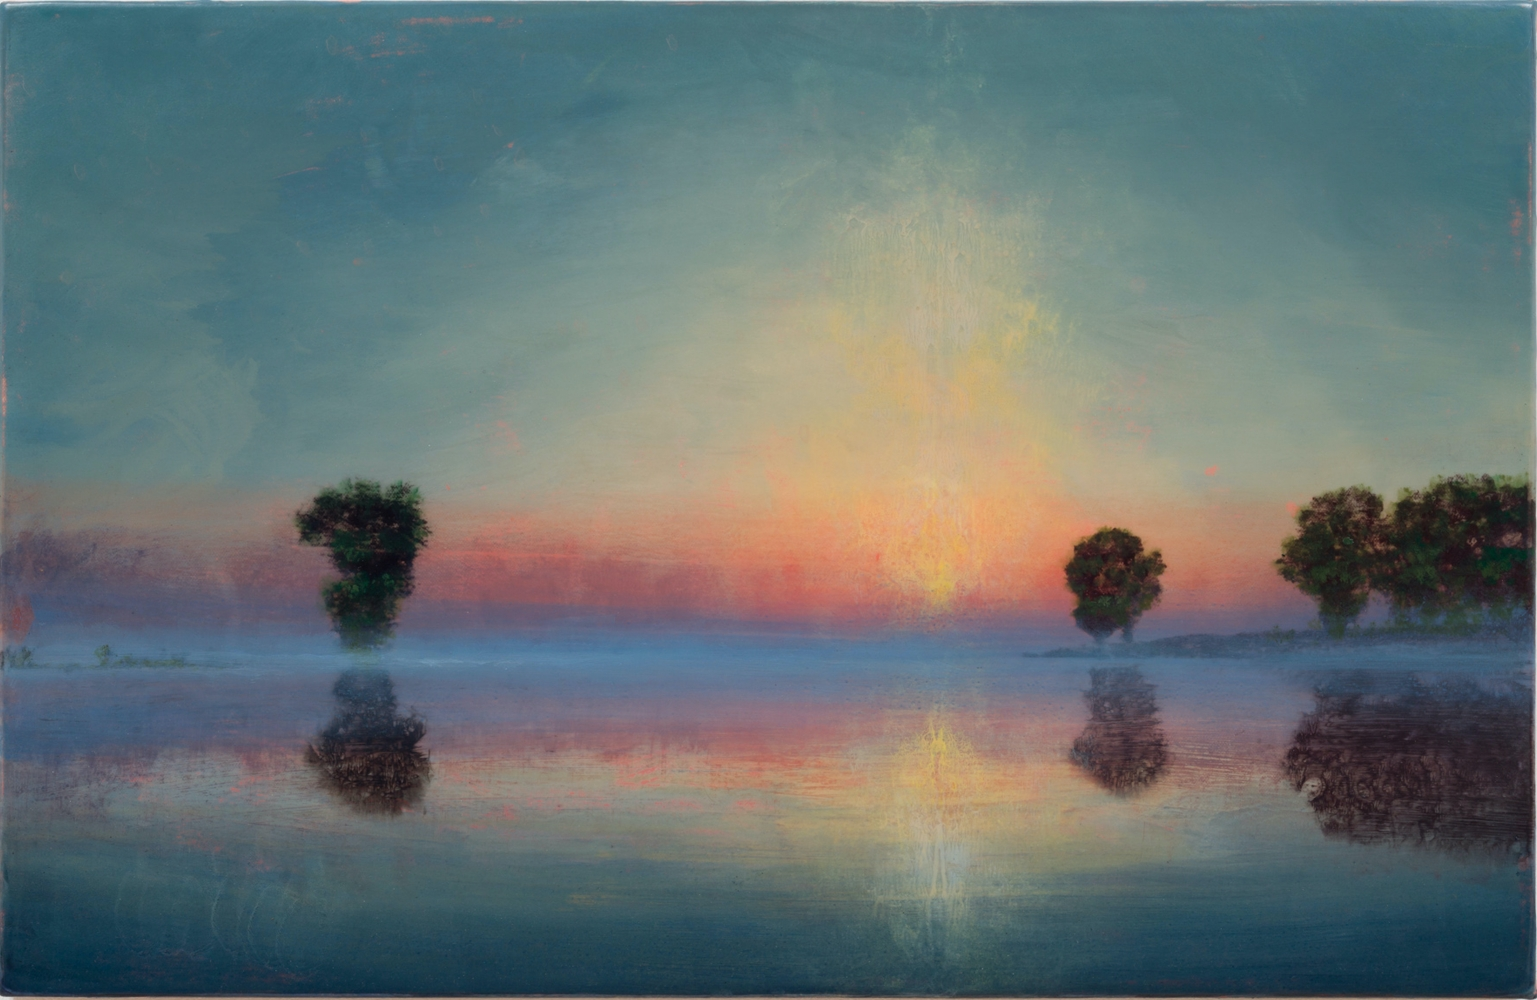 Landscape painting with reflection of sun on river by Stephen Hannock.